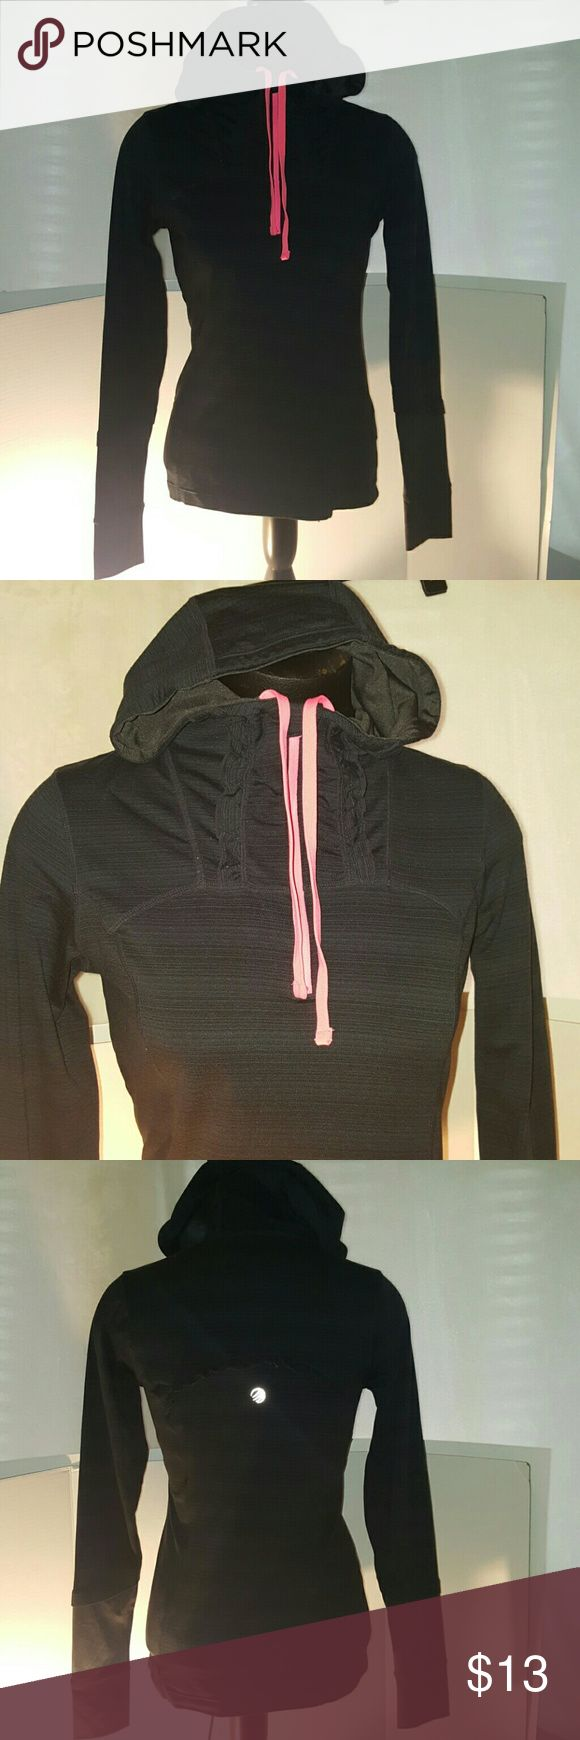 MPG gray athletic hoodie size small Mpg mondetta performance gear Hoodie  Gray and pink  Womens size small Stretchy Great condition mpg  Tops Sweatshirts & Hoodies